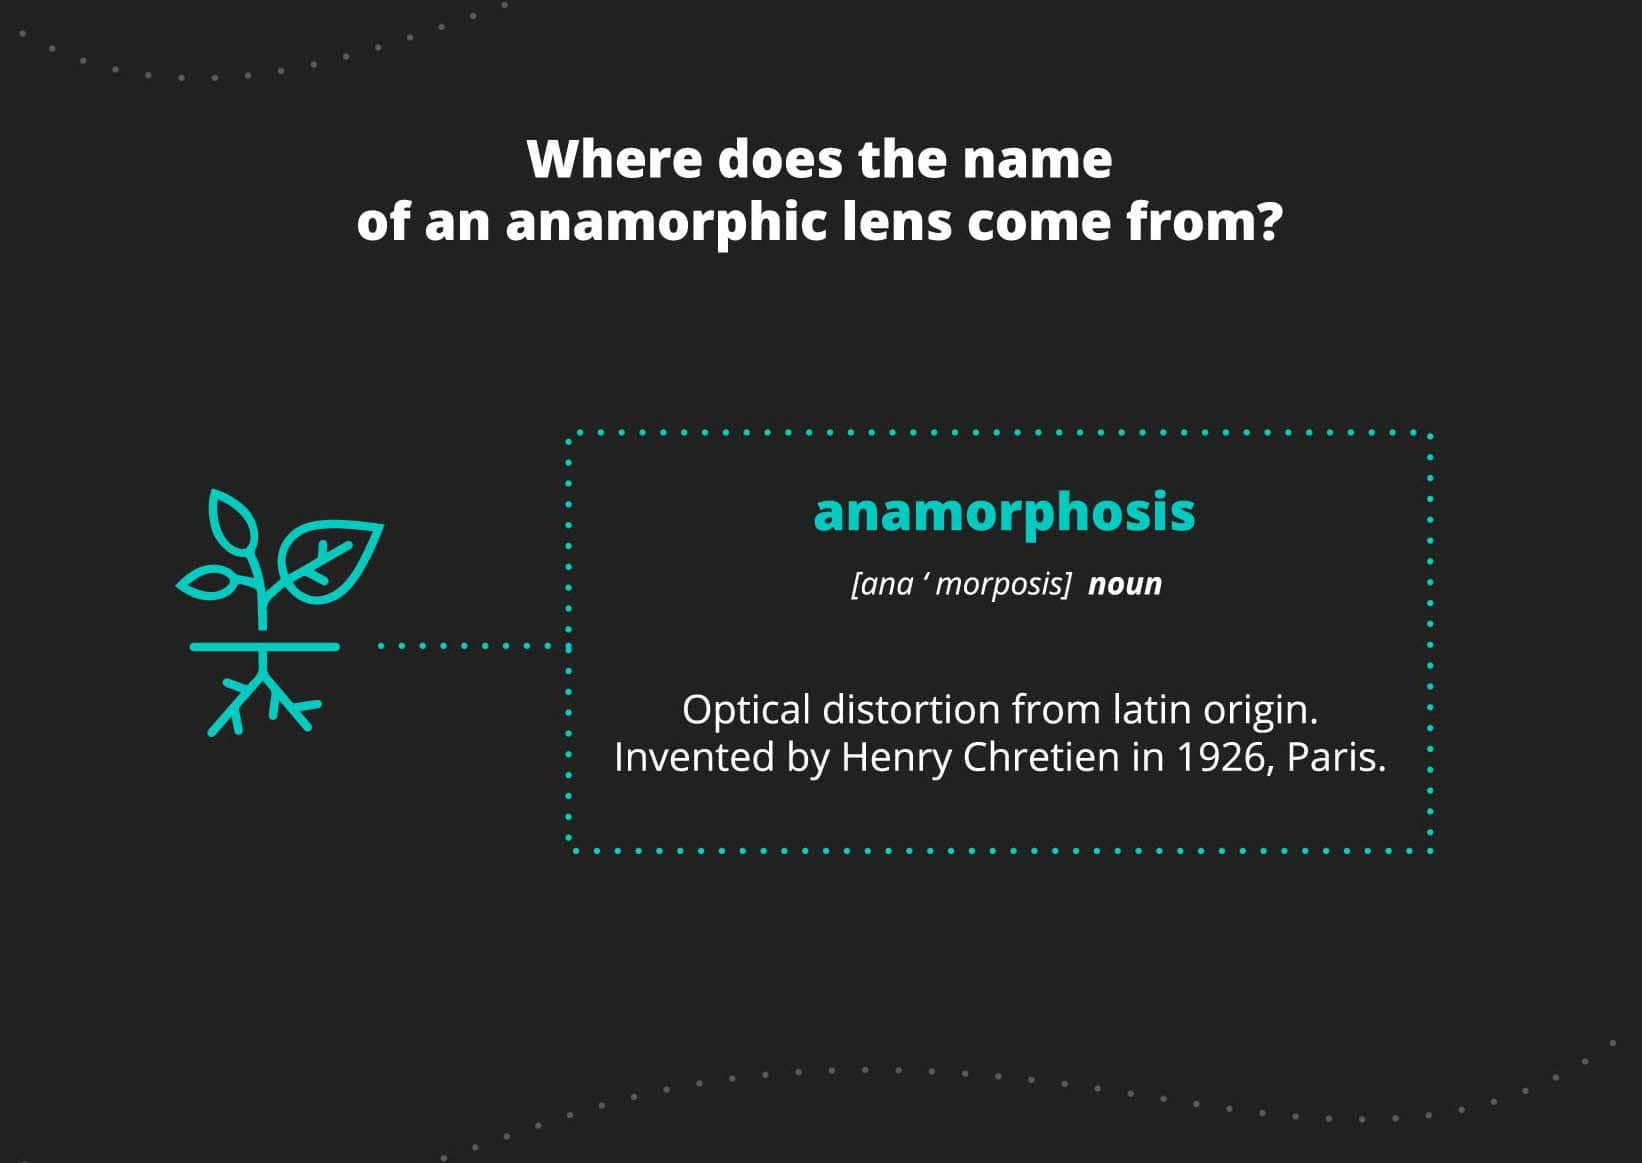 What is an anamorphic lens? Where does the name of an anamorphic lens come from? Anamorphosis